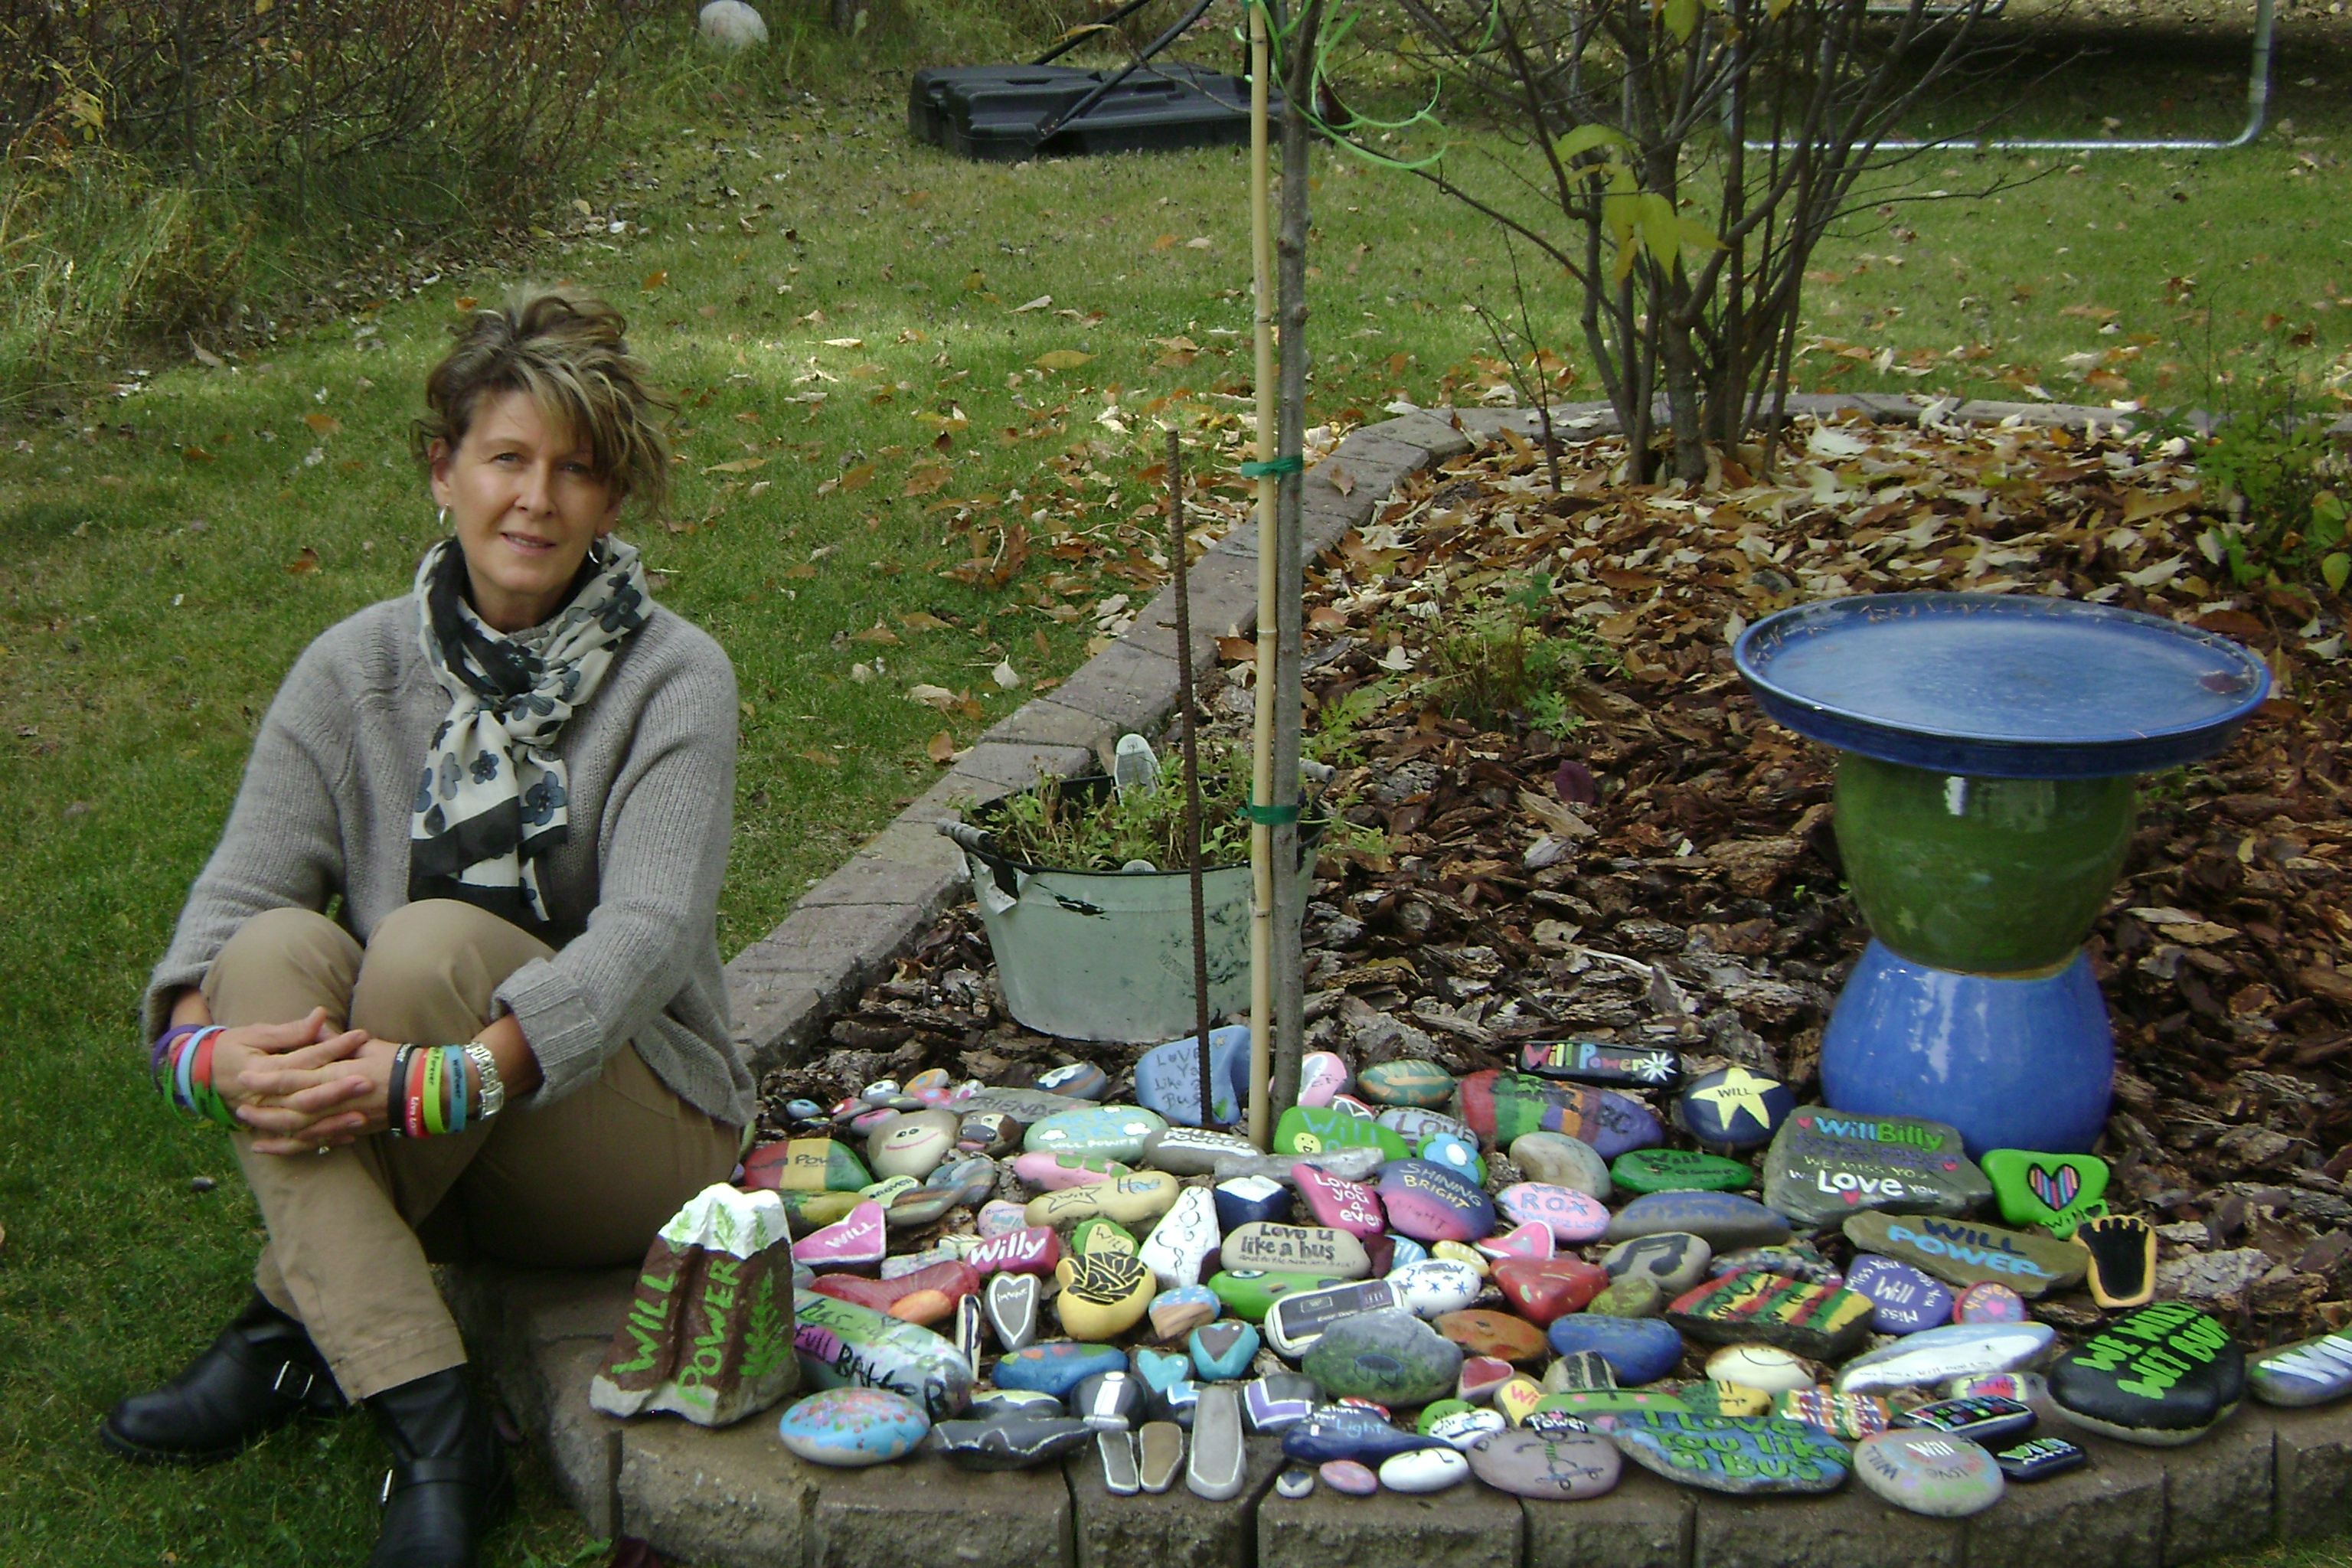 Joni and the WillBilly Tree and our Painted Rock Garden